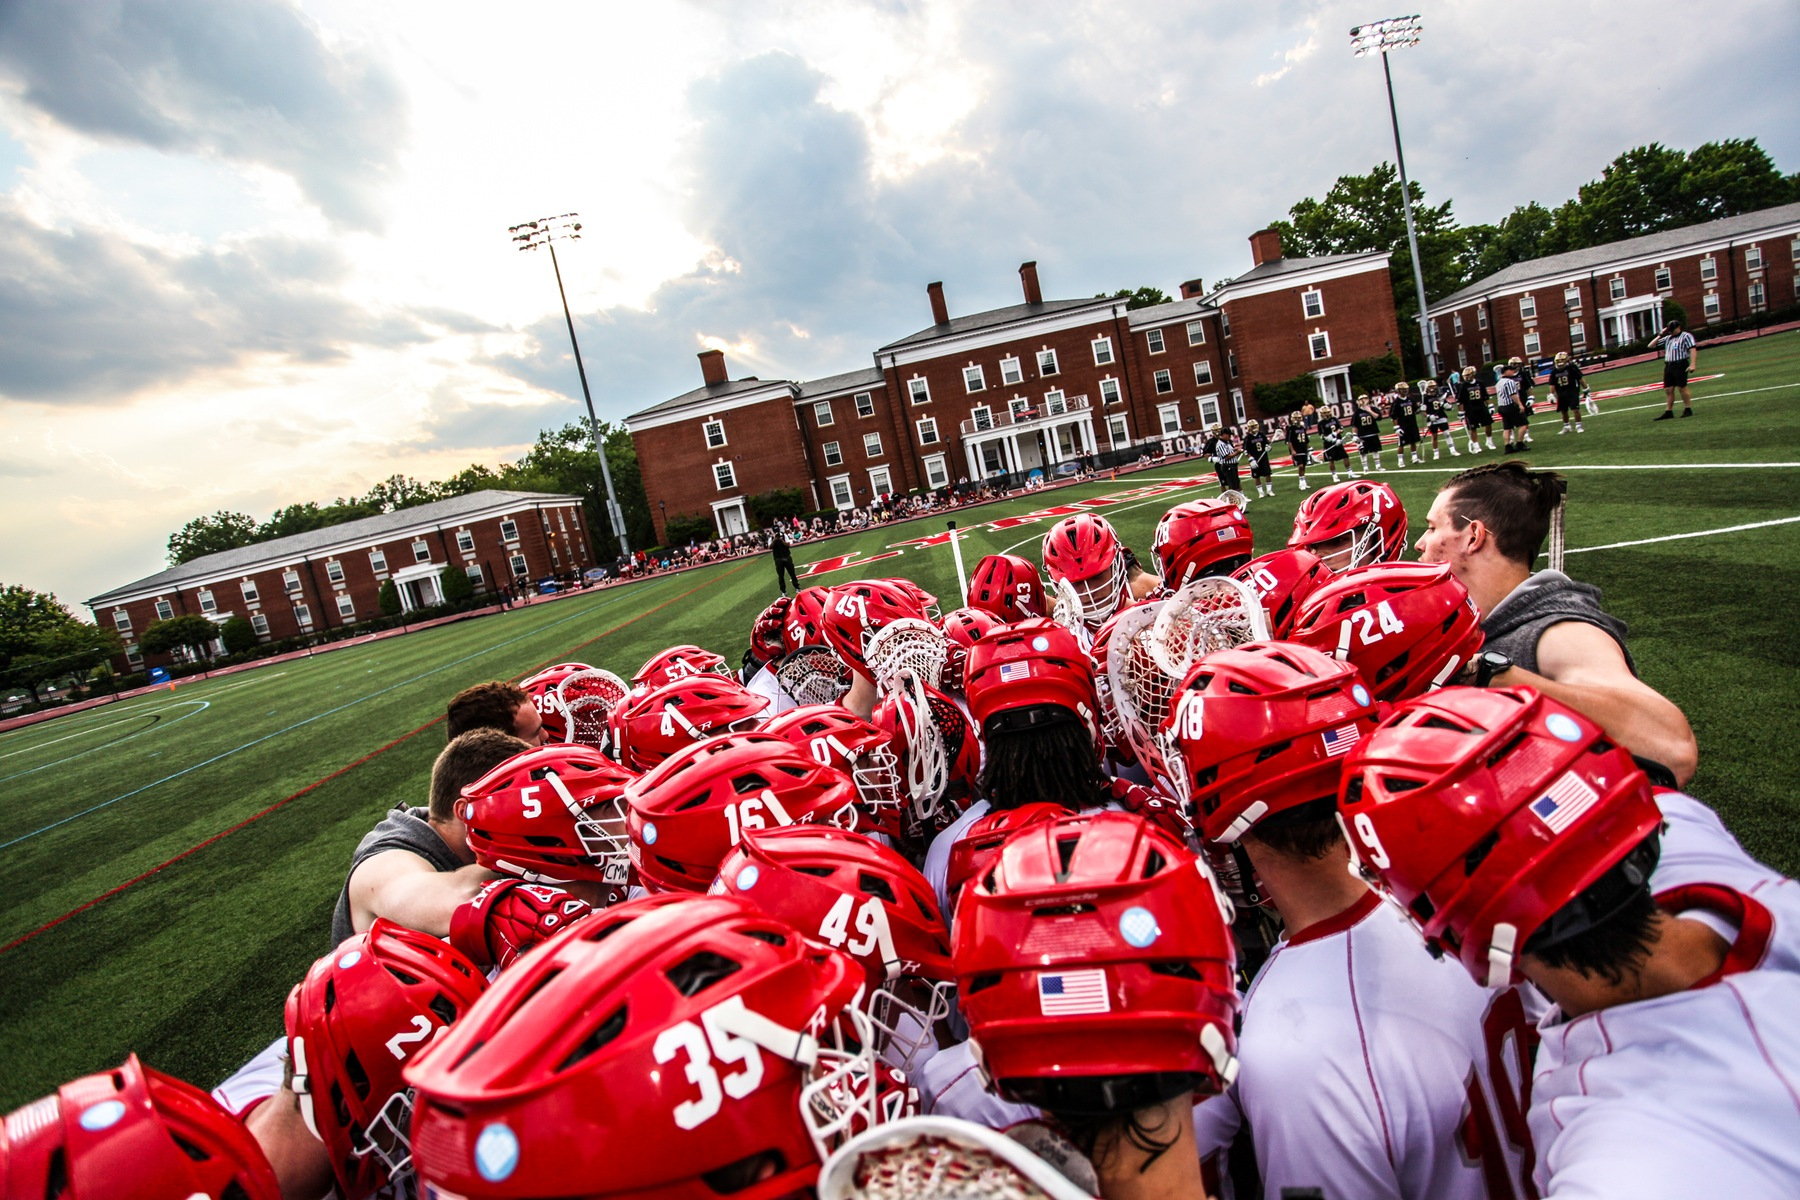 Lynchburg men's lacrosse huddles on the field before a game.